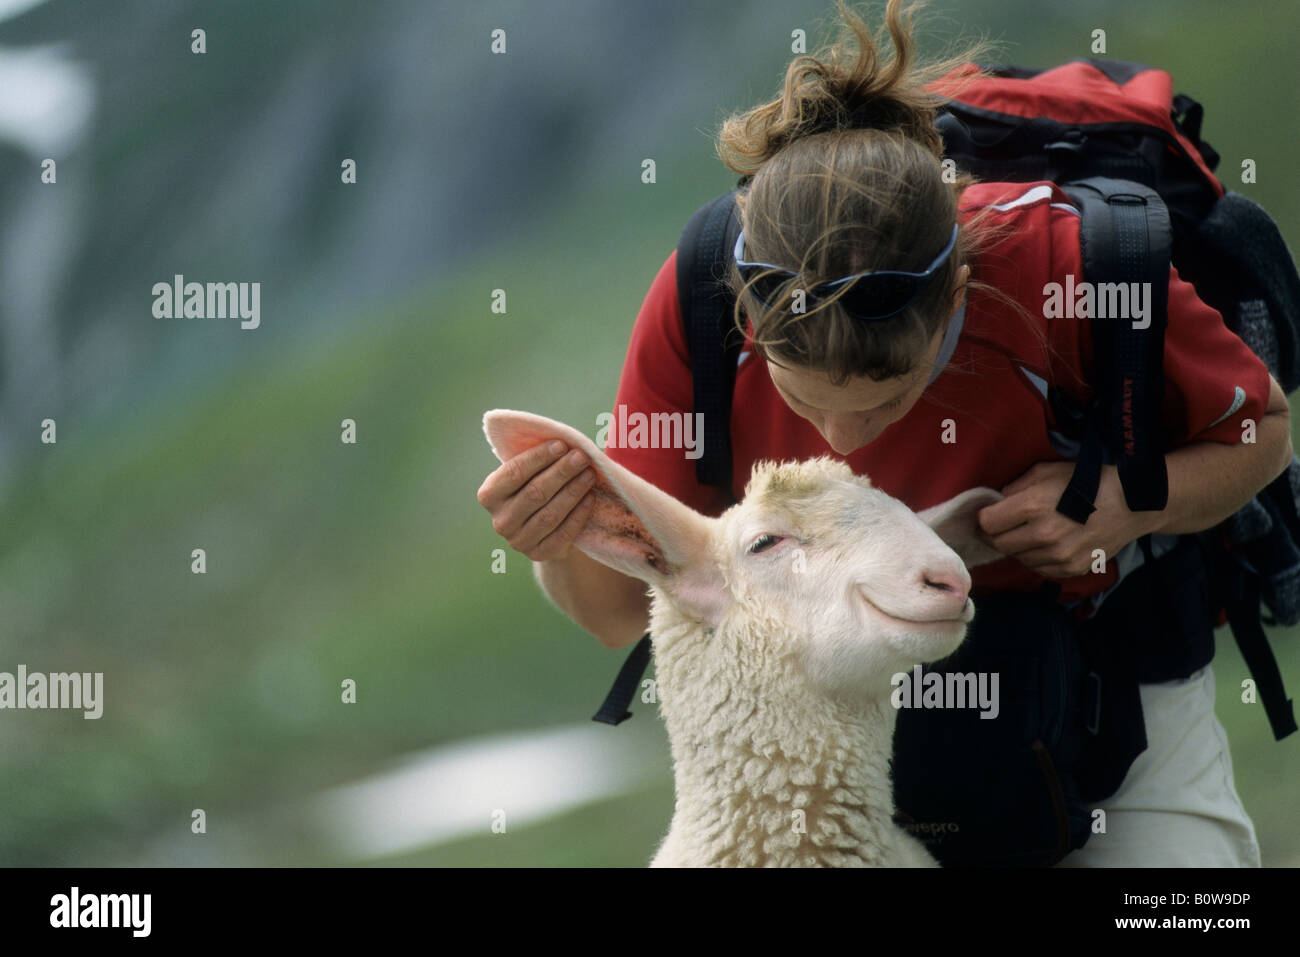 Woman playing with a happily grinning sheep, image manipulation - Stock Image